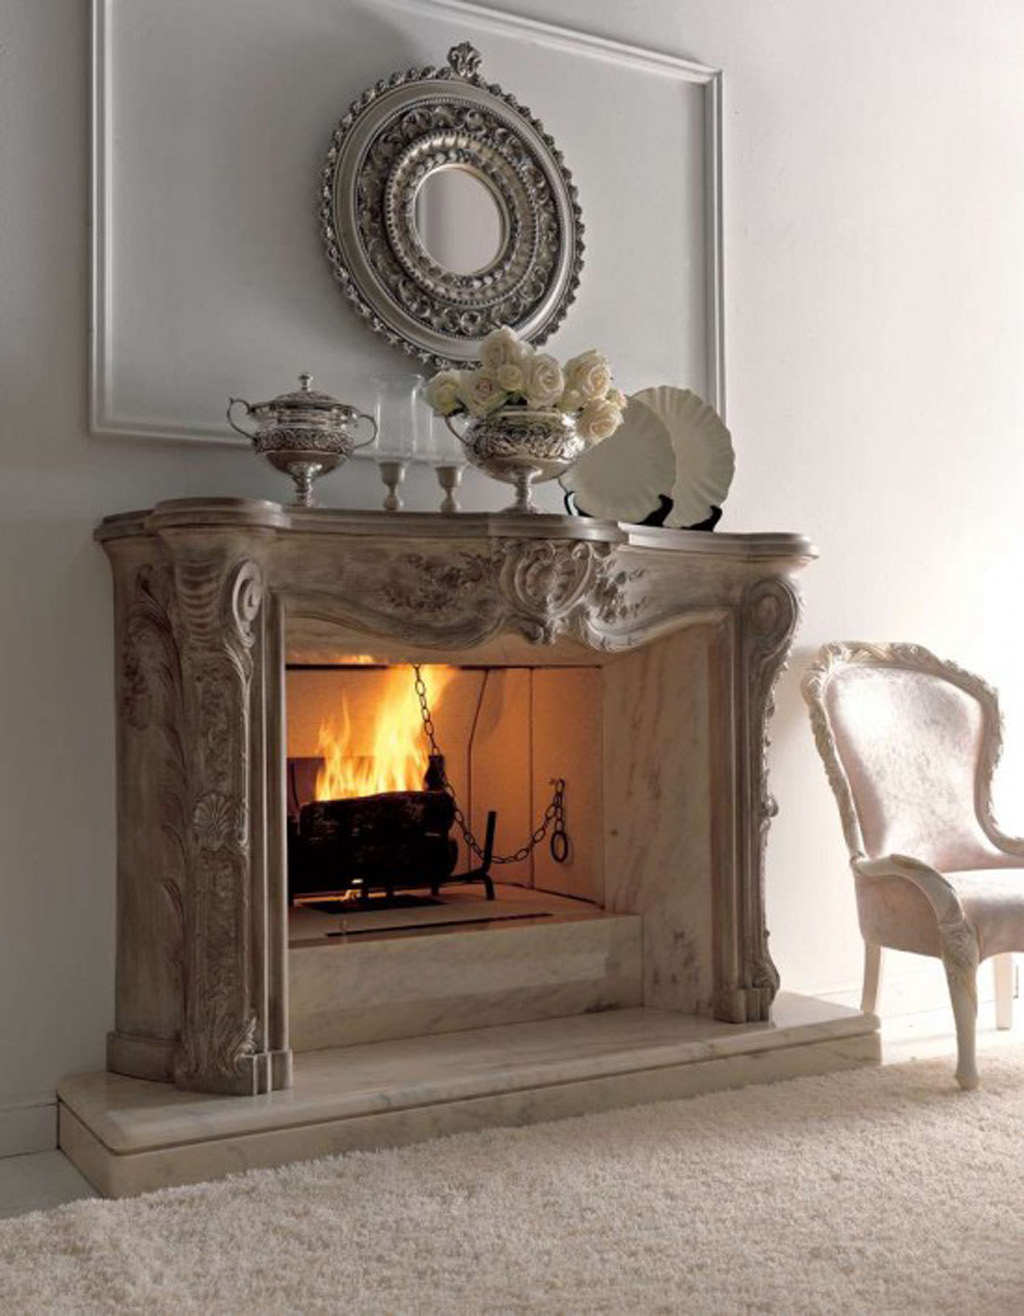 Decorating Ideas Wall Above Fireplace : Classic fireplace decor idea iroonie